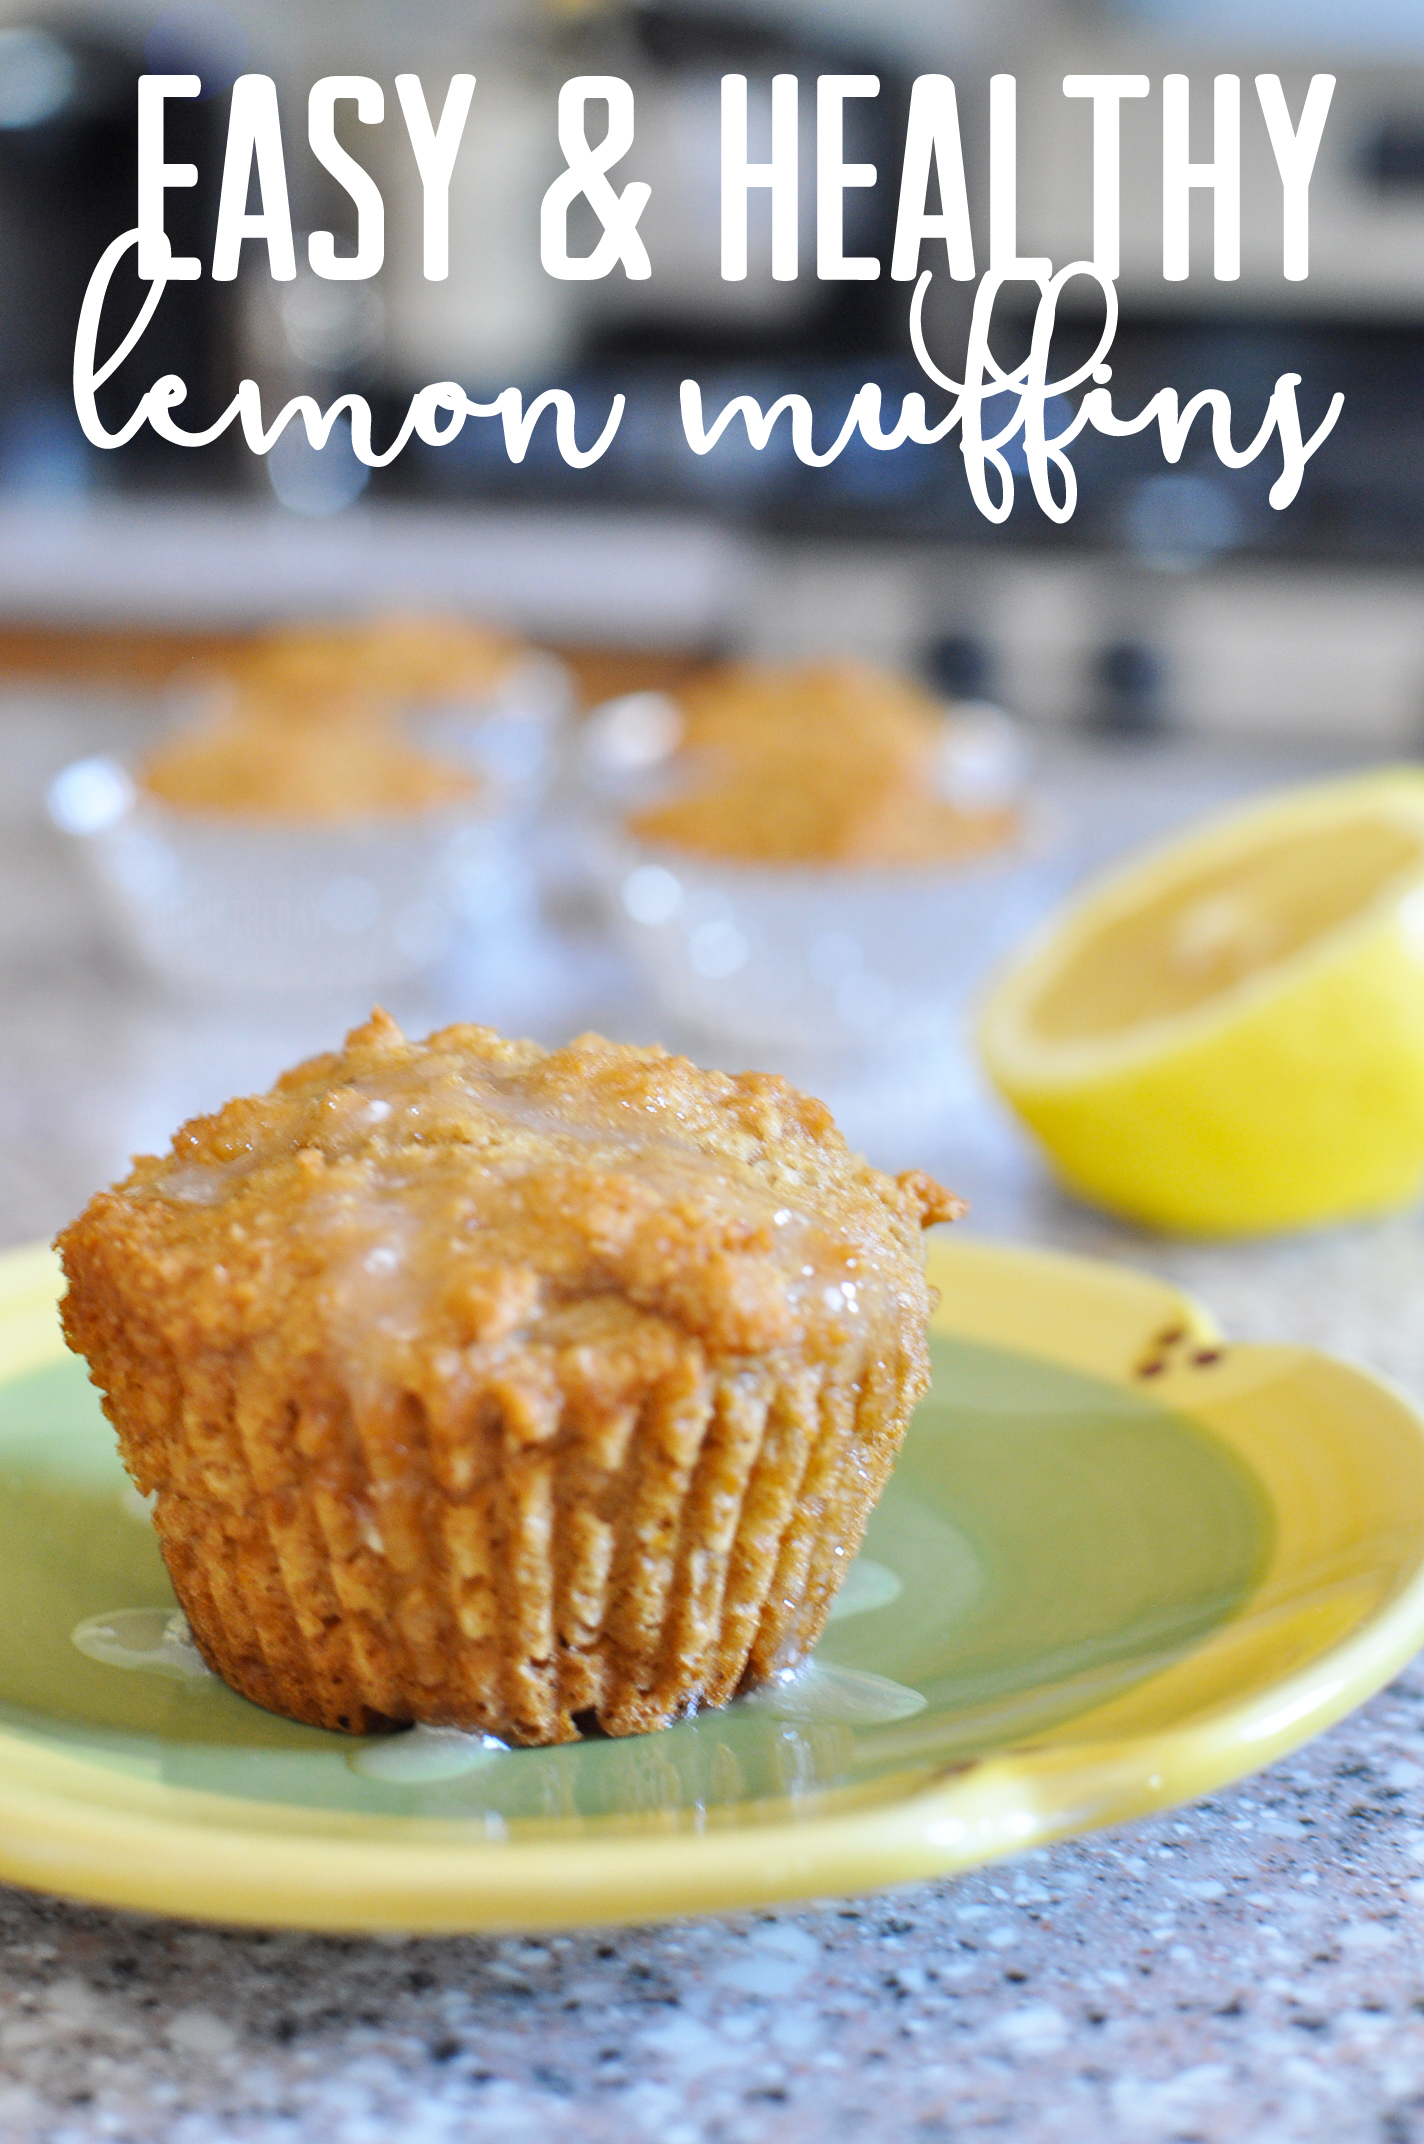 Easy & Healthy Lemon Muffins | Drink the Day